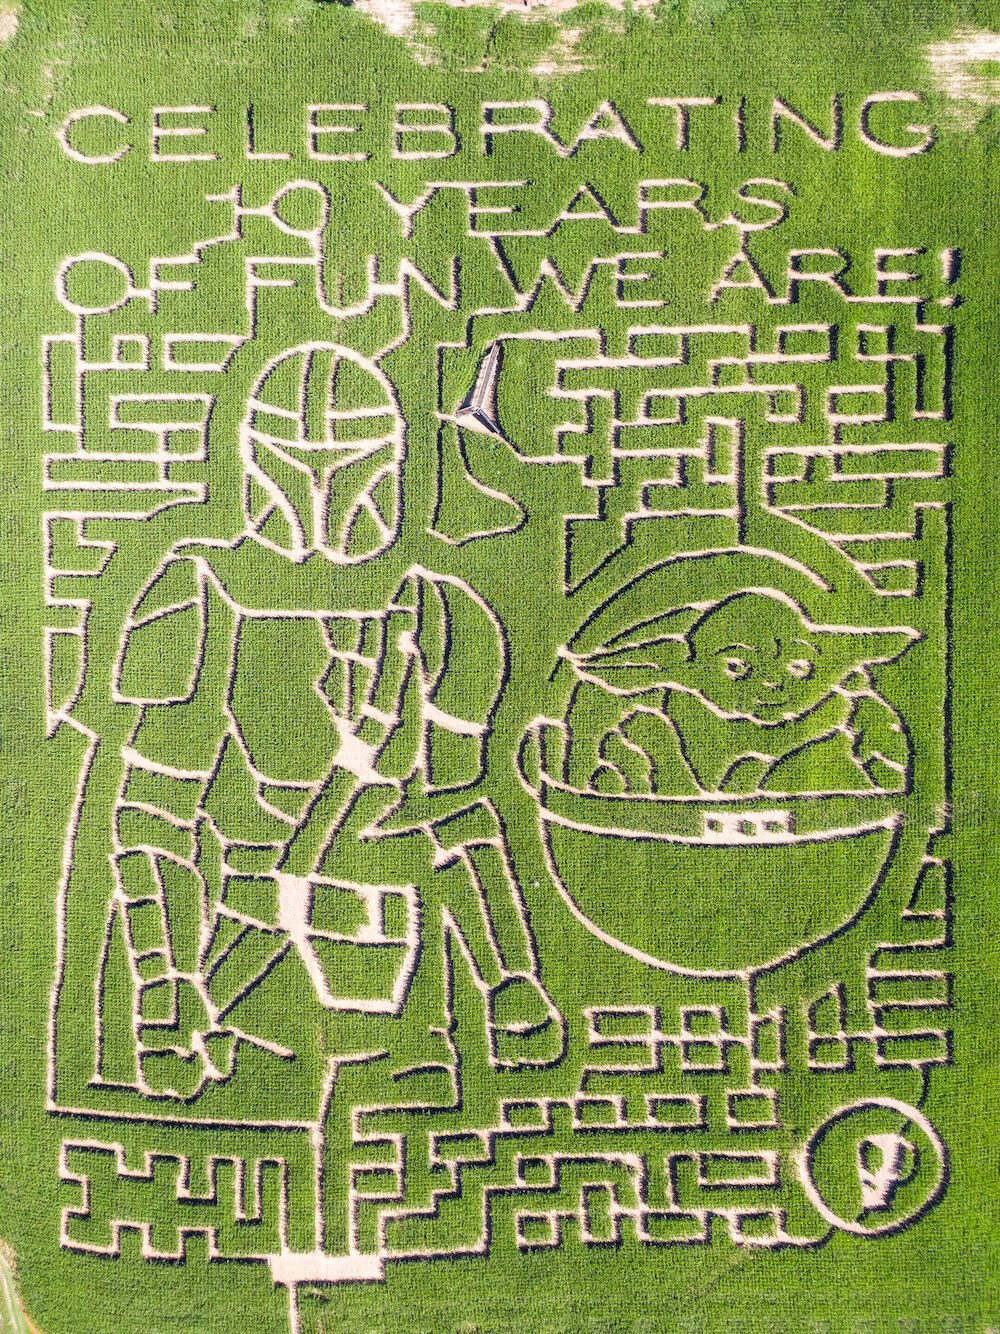 A Mandalorian themed corn maze at Amazing Fall Fun in Waterloo.